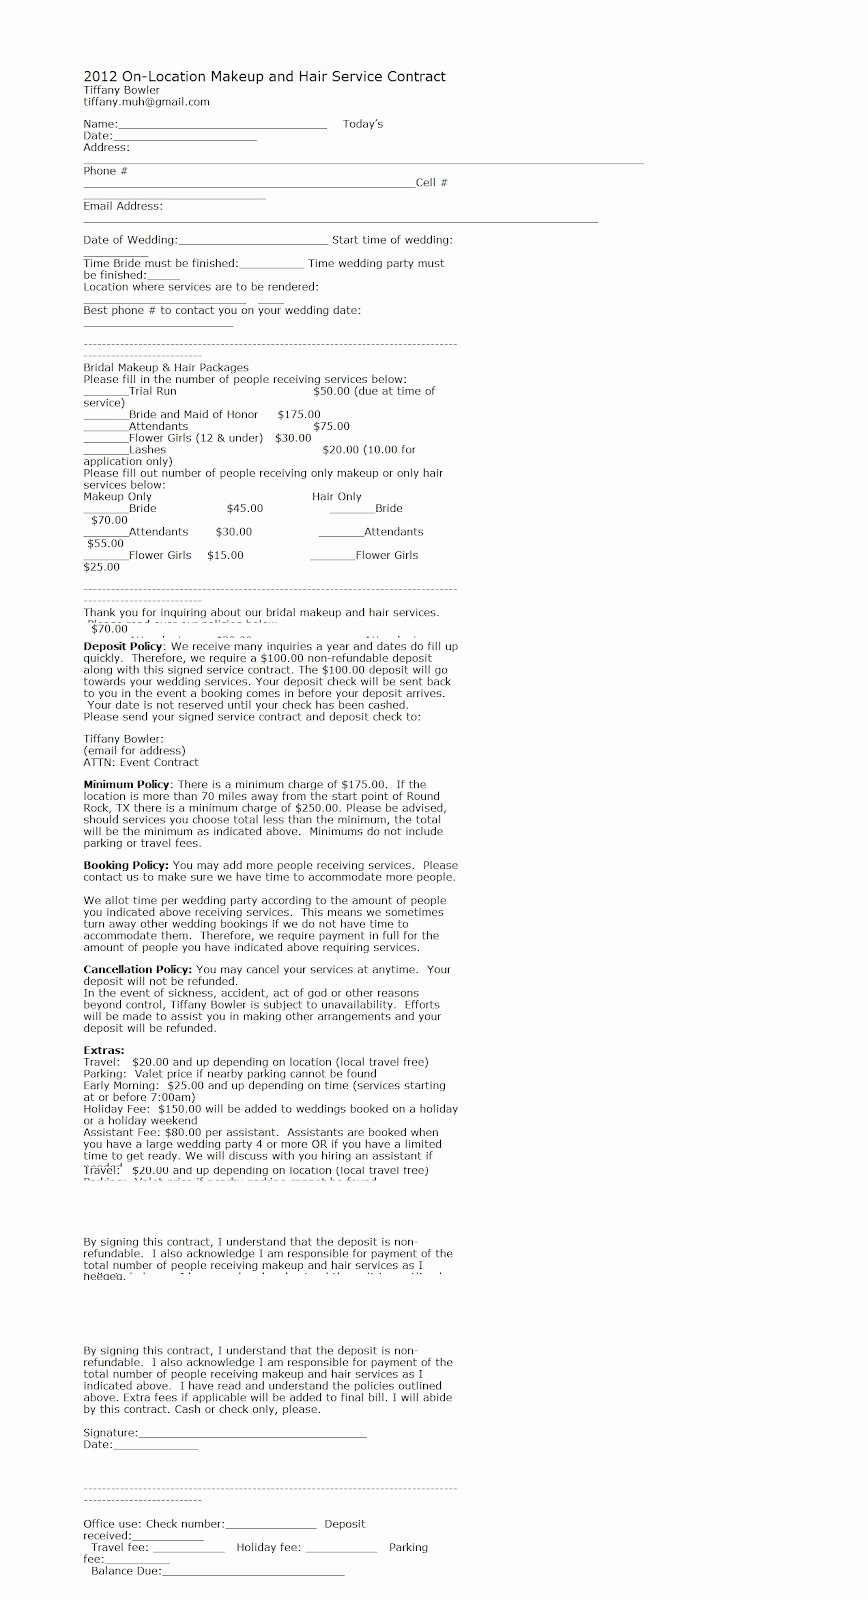 Hair Stylist Contract for Wedding Awesome Download Makeup Bridal Contract Image Frompo